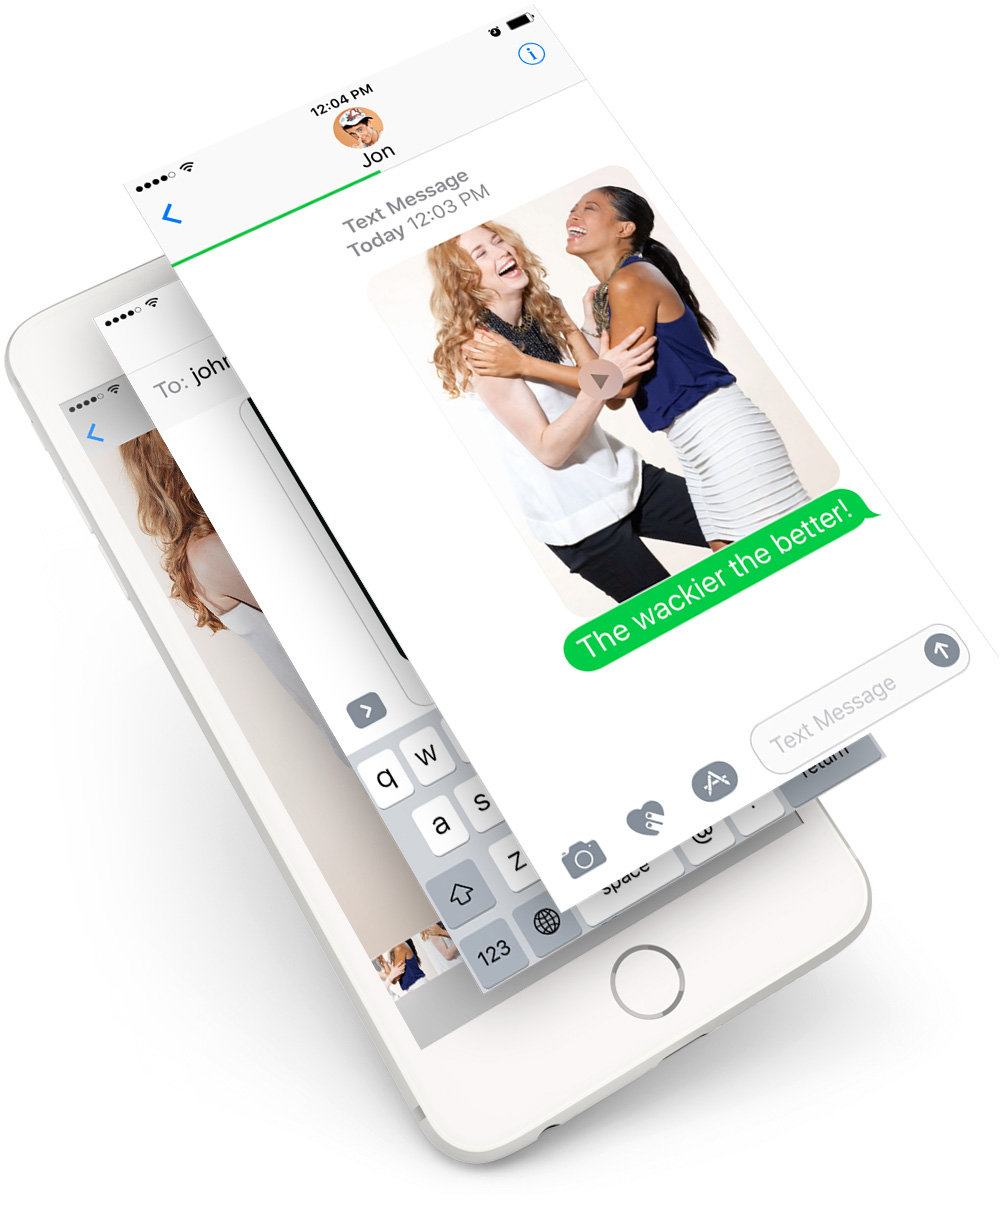 Ecards Reinvented: Pipture Video Messaging Service. Send Video Ecards Via Texts, Emails And Social Media.